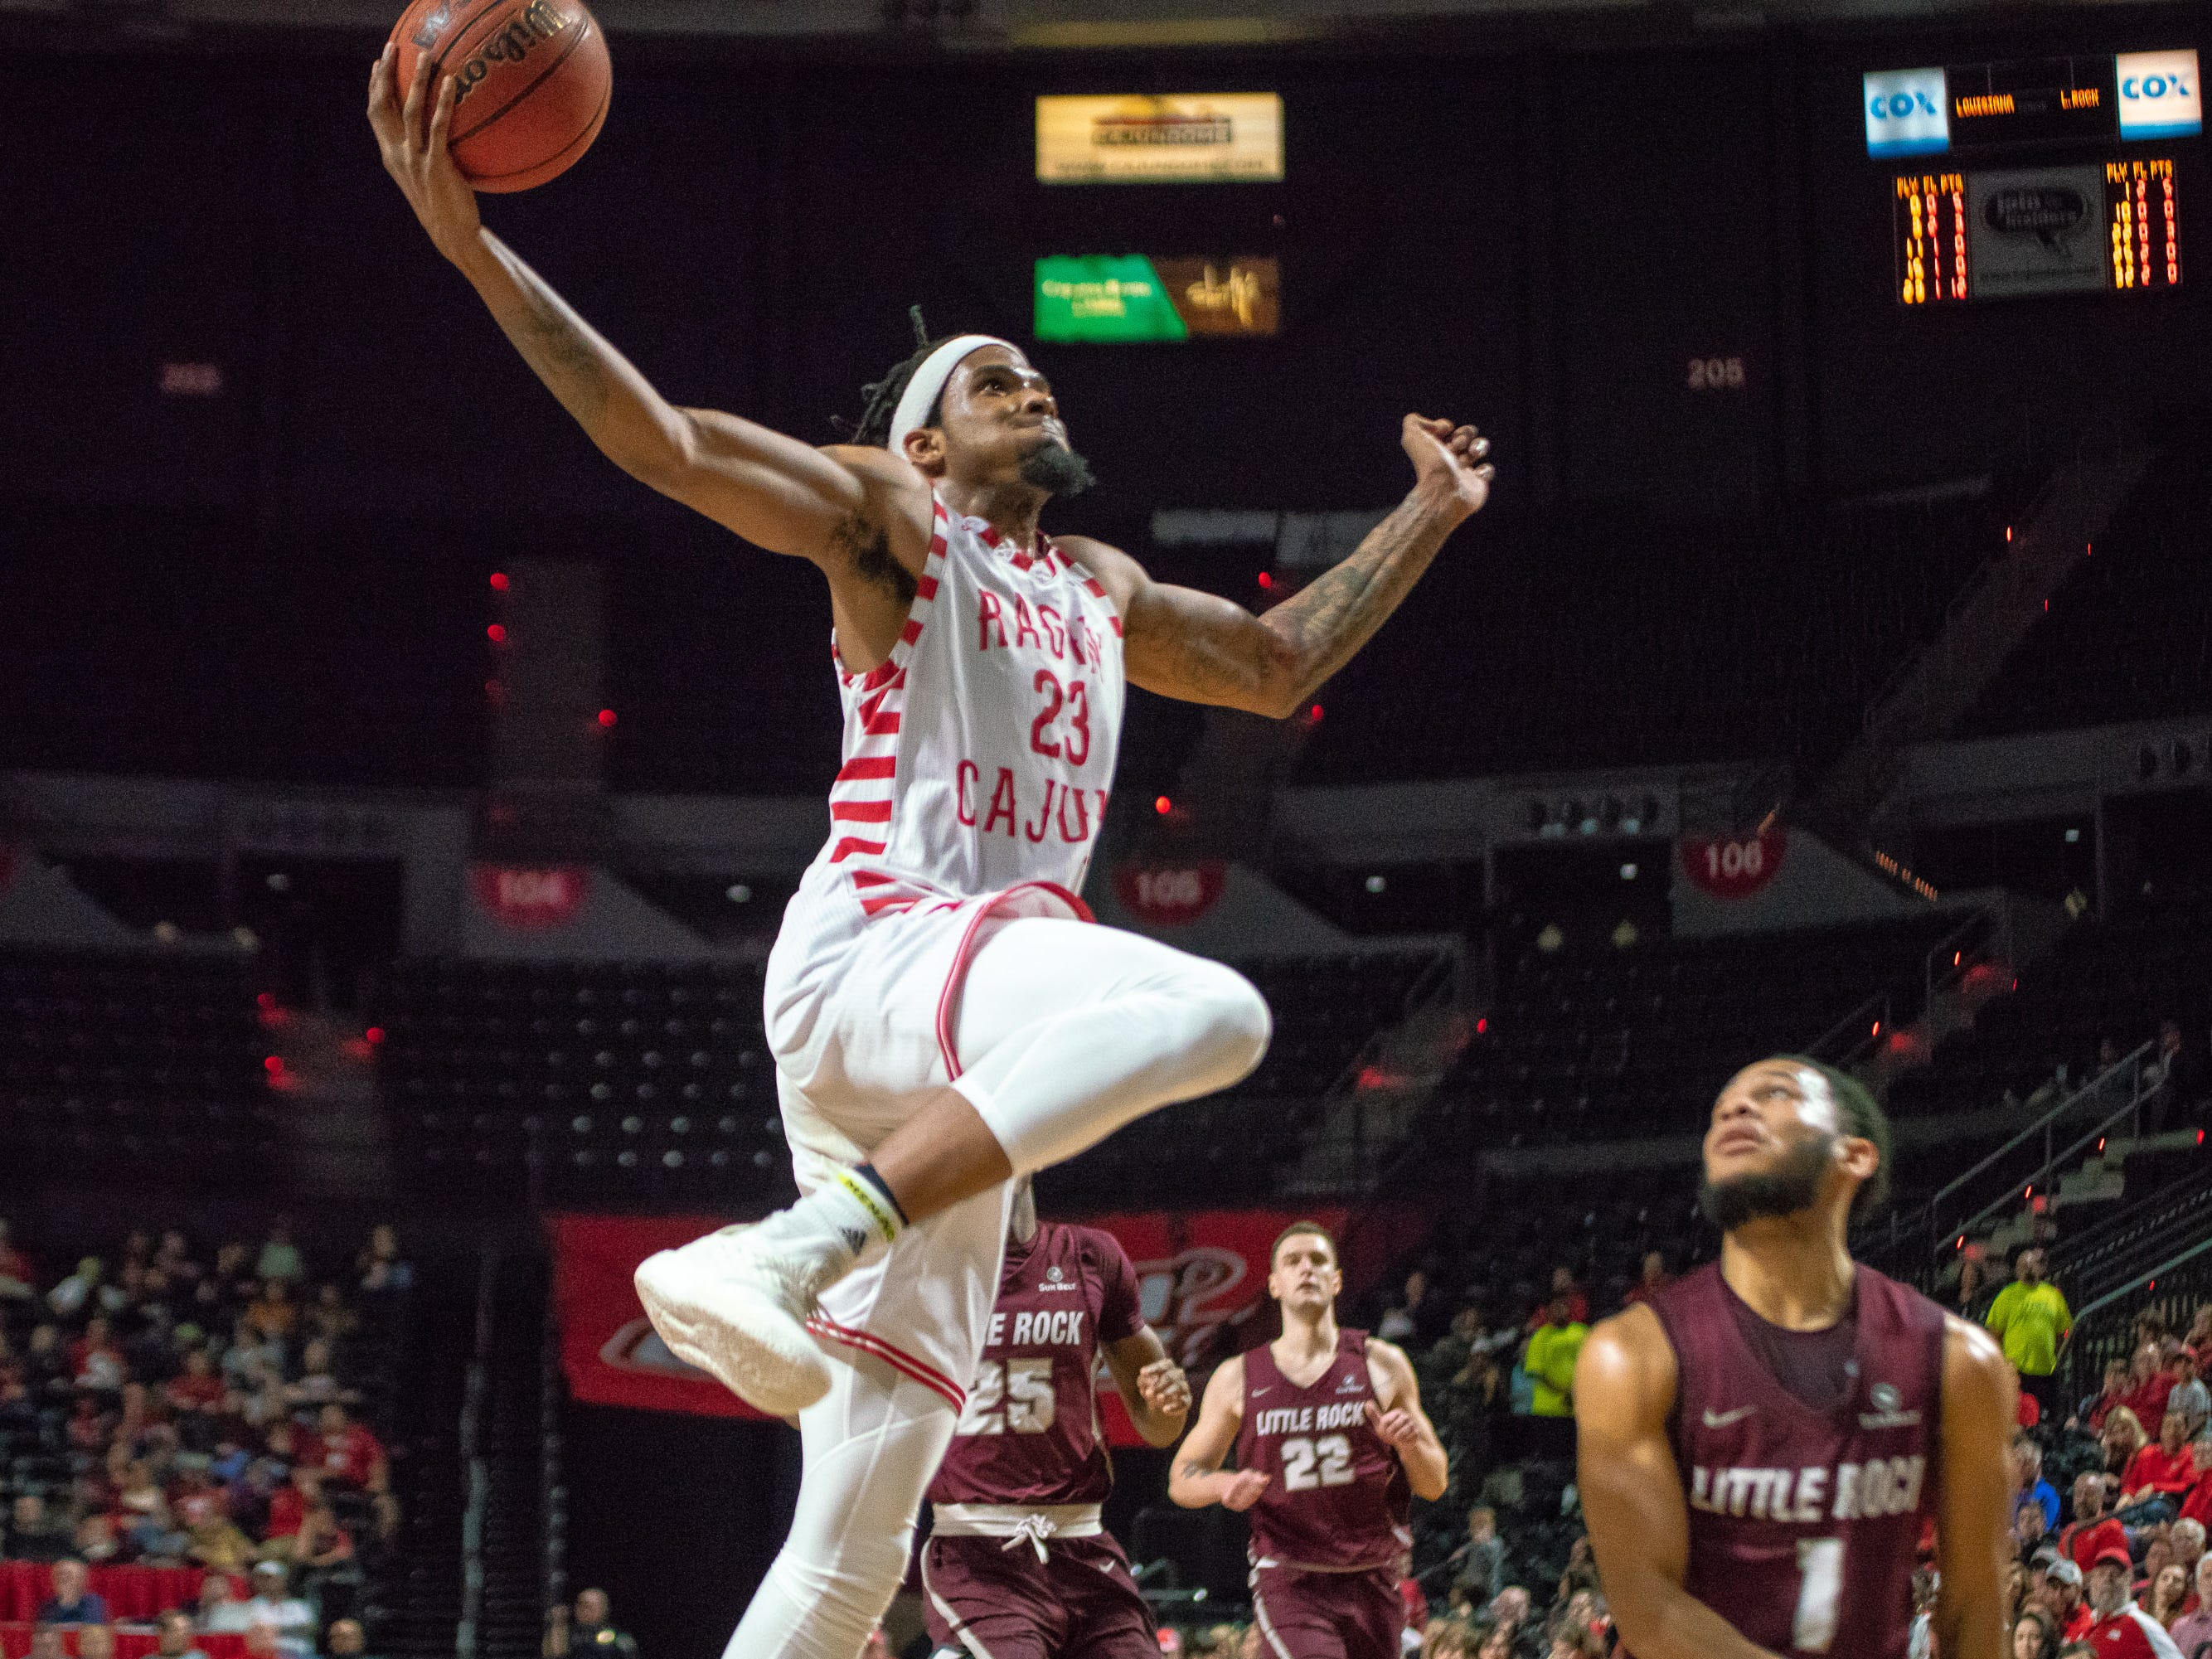 UL's Jakeenan Gant leaps high to score a layup as the Ragin' Cajuns take on the Little Rock Trojans at the Cajundome on January 5, 2019.